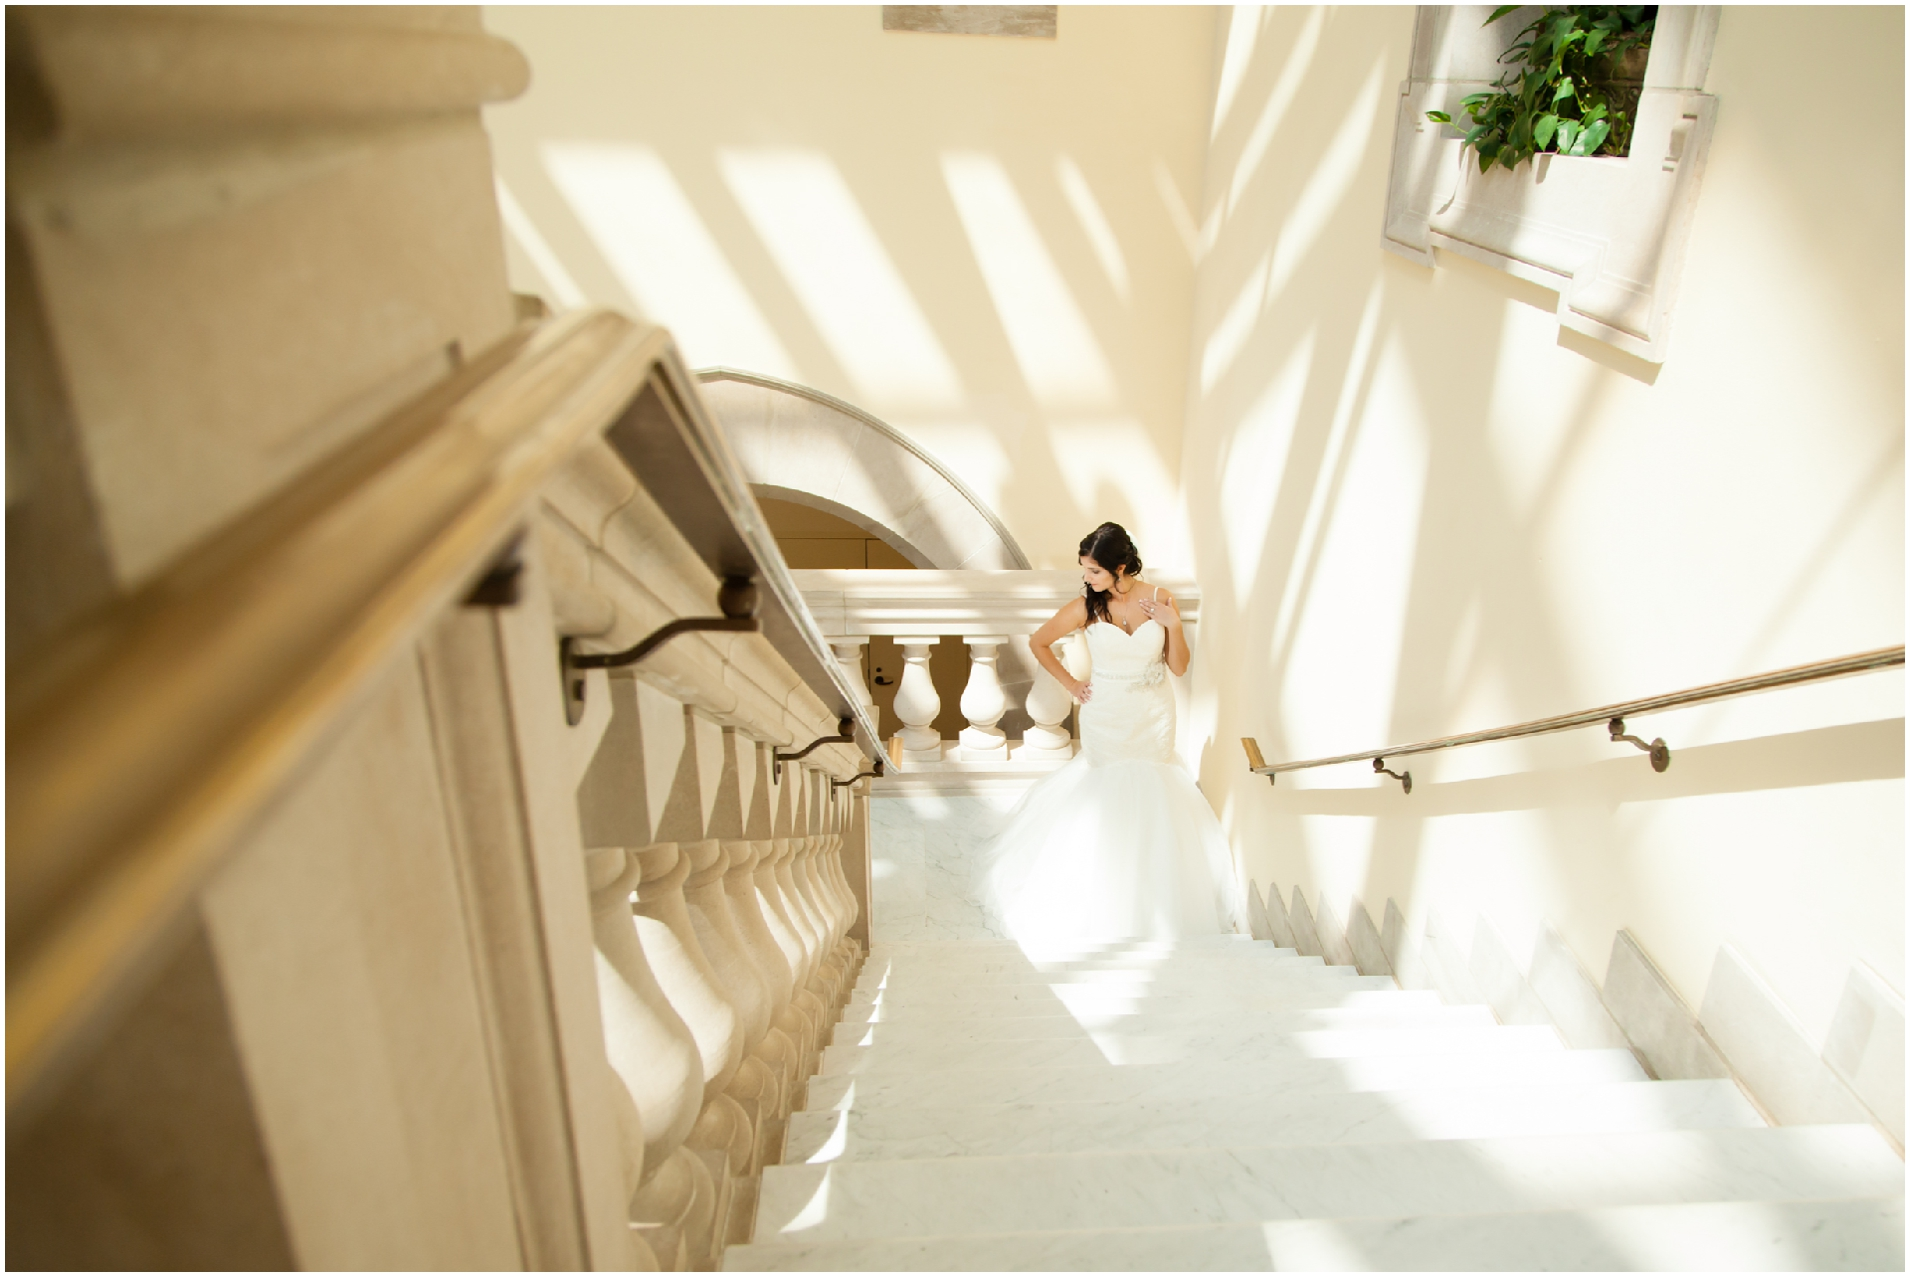 chrysler museum, norfolk virginia, sami roy photography, norfolk wedding photographer